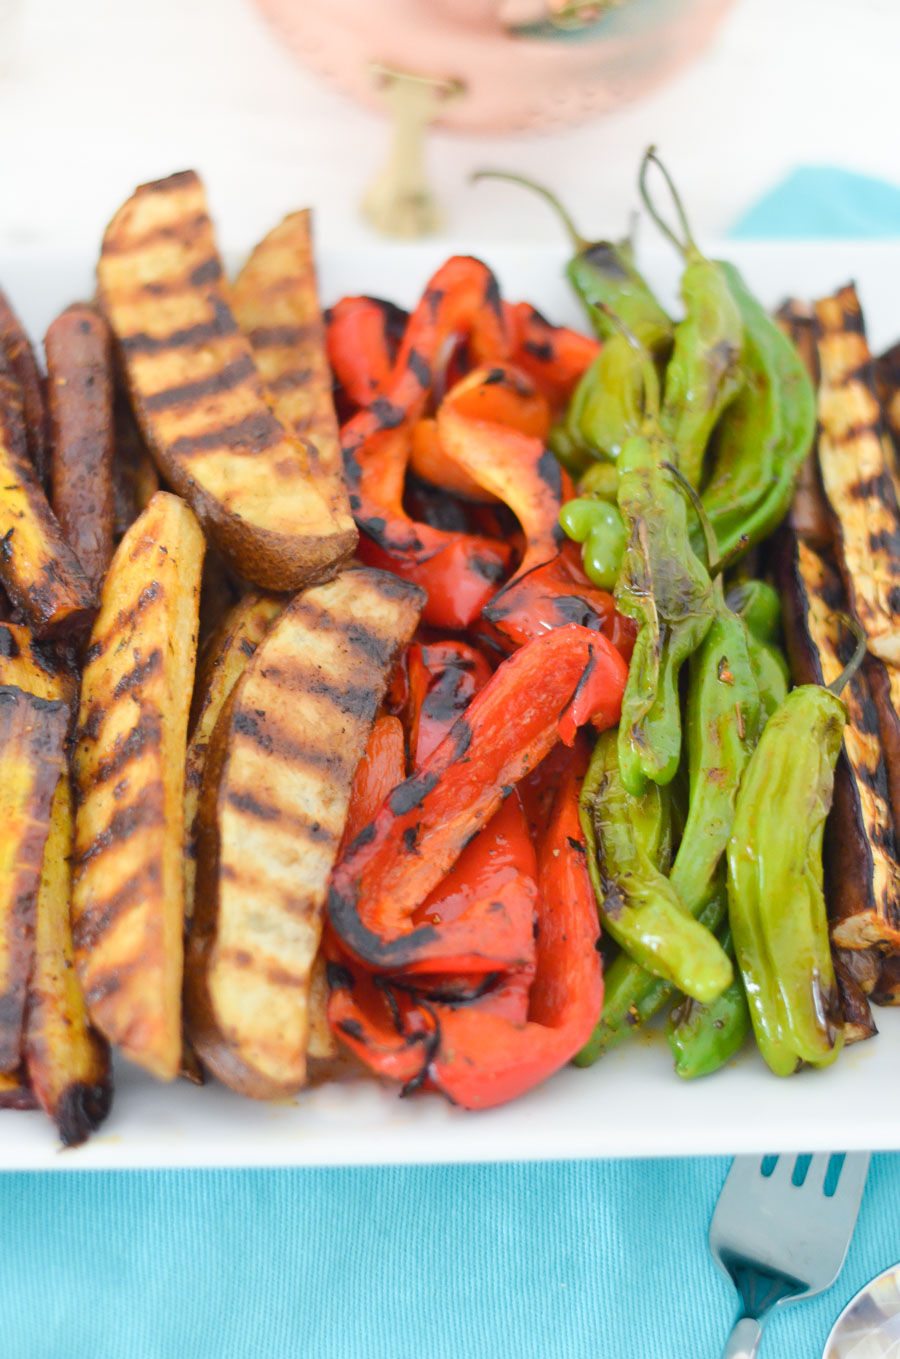 Grilled Vegetable Hors d'oeuvres | Make Ahead Appetizer